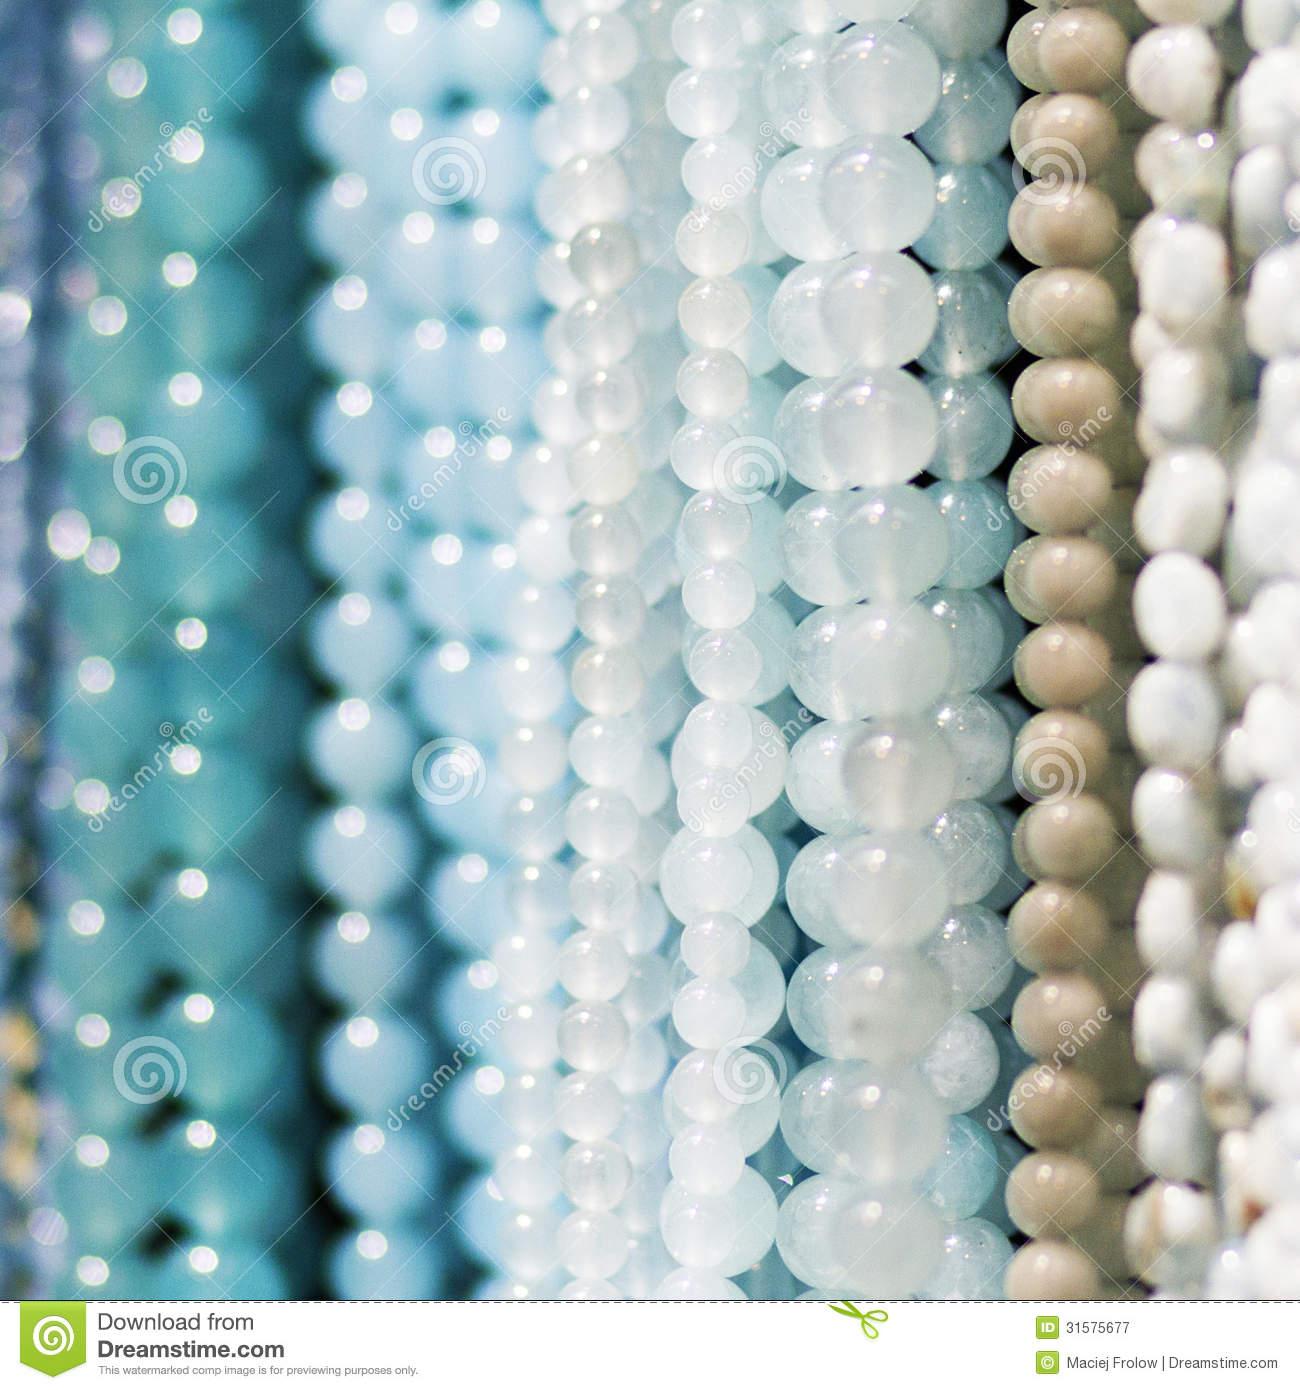 Strings of beads or necklaces